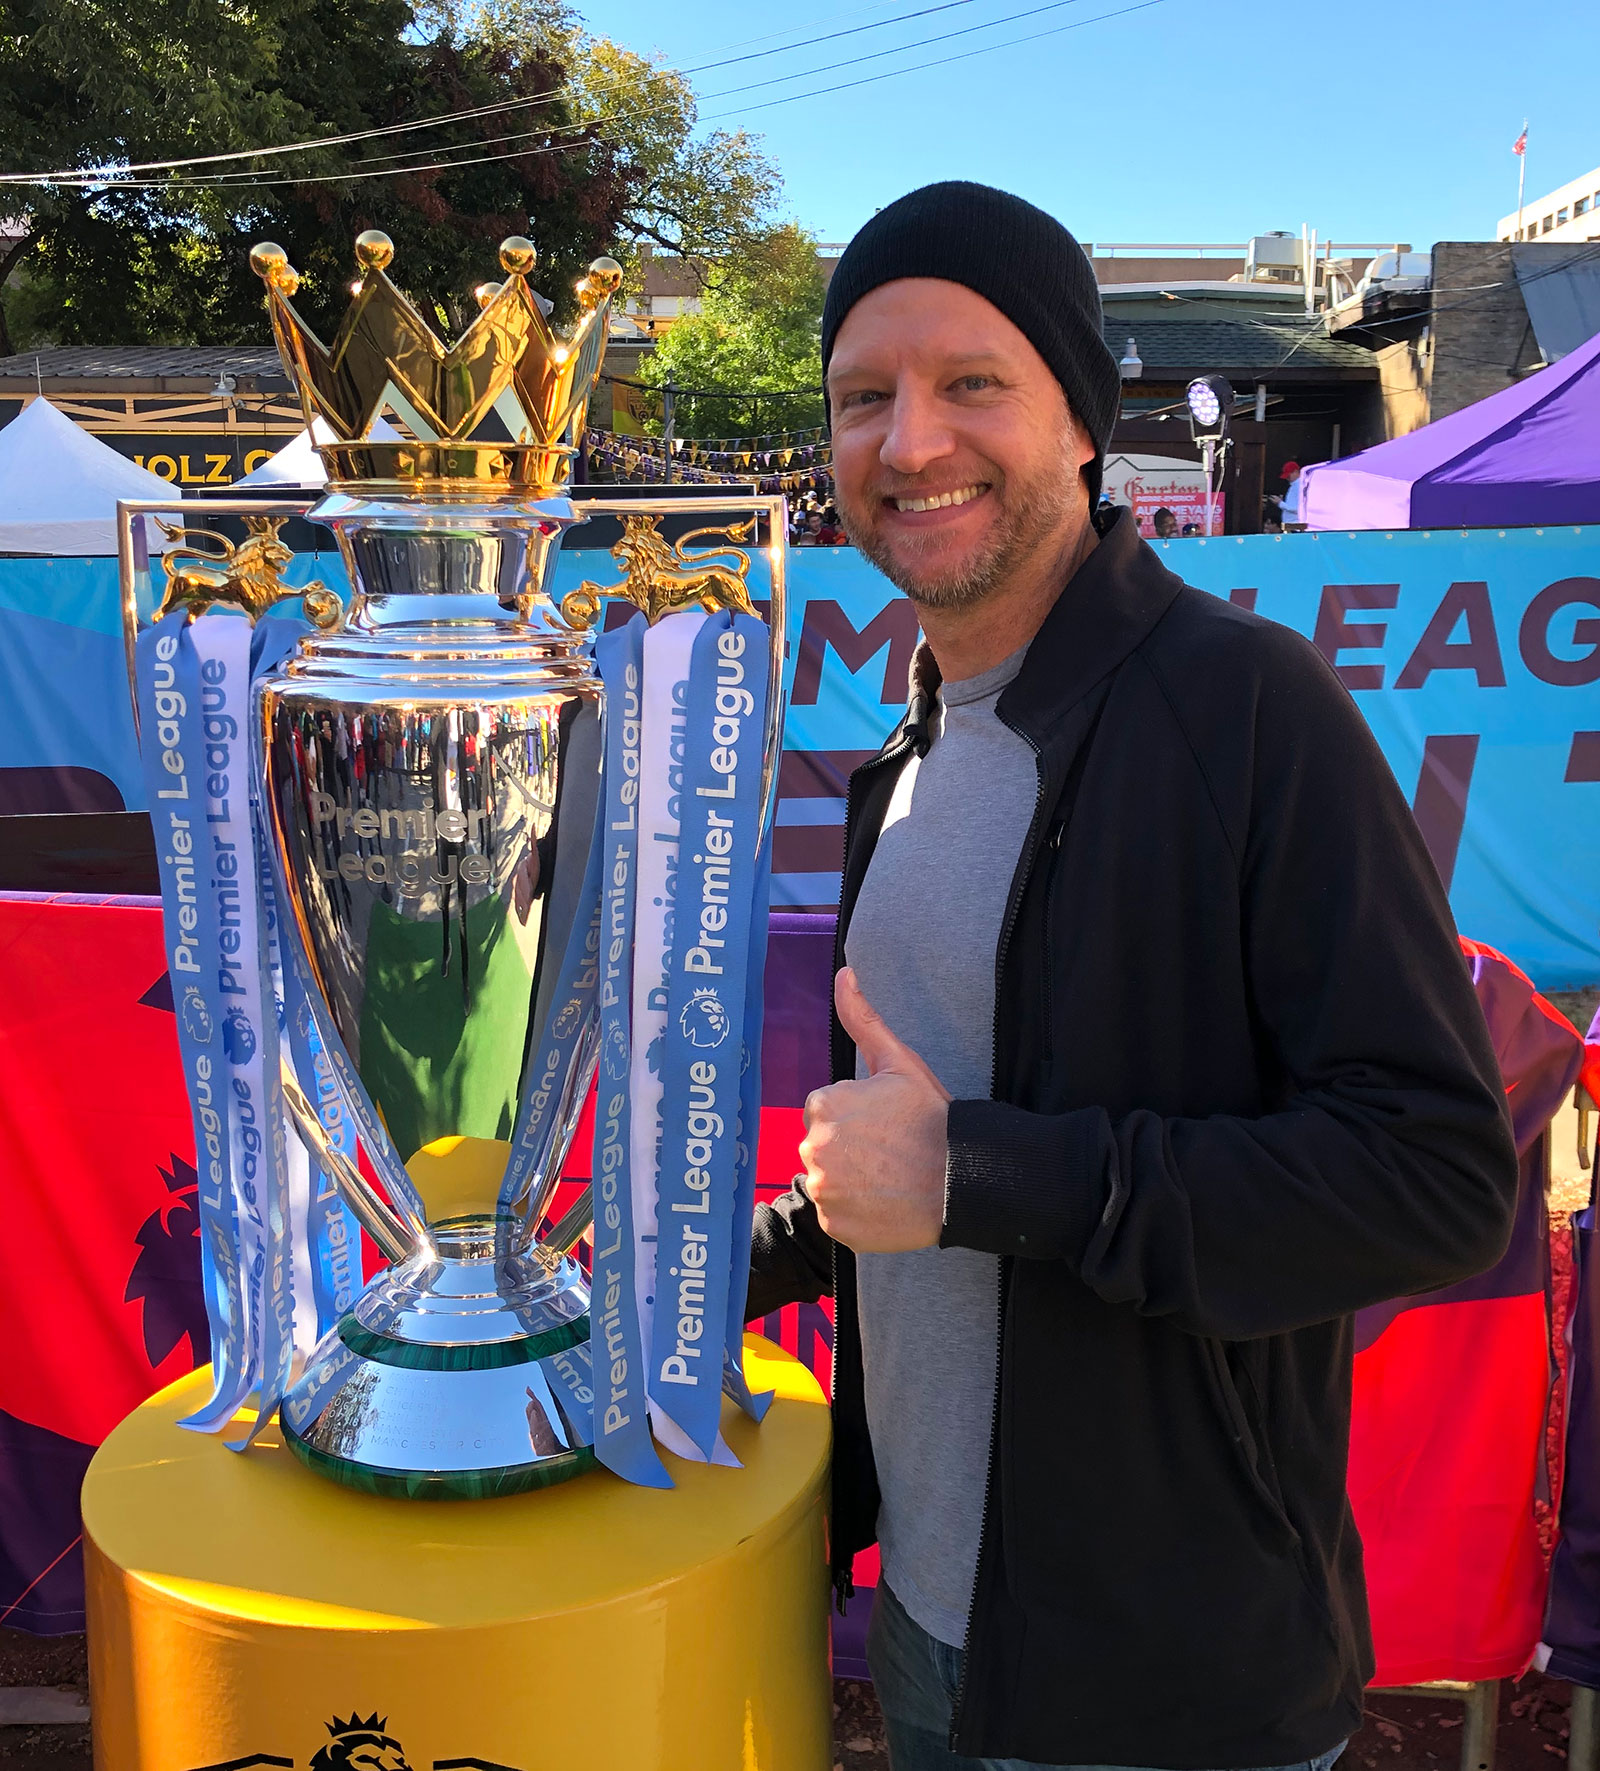 With the Premier League trophy